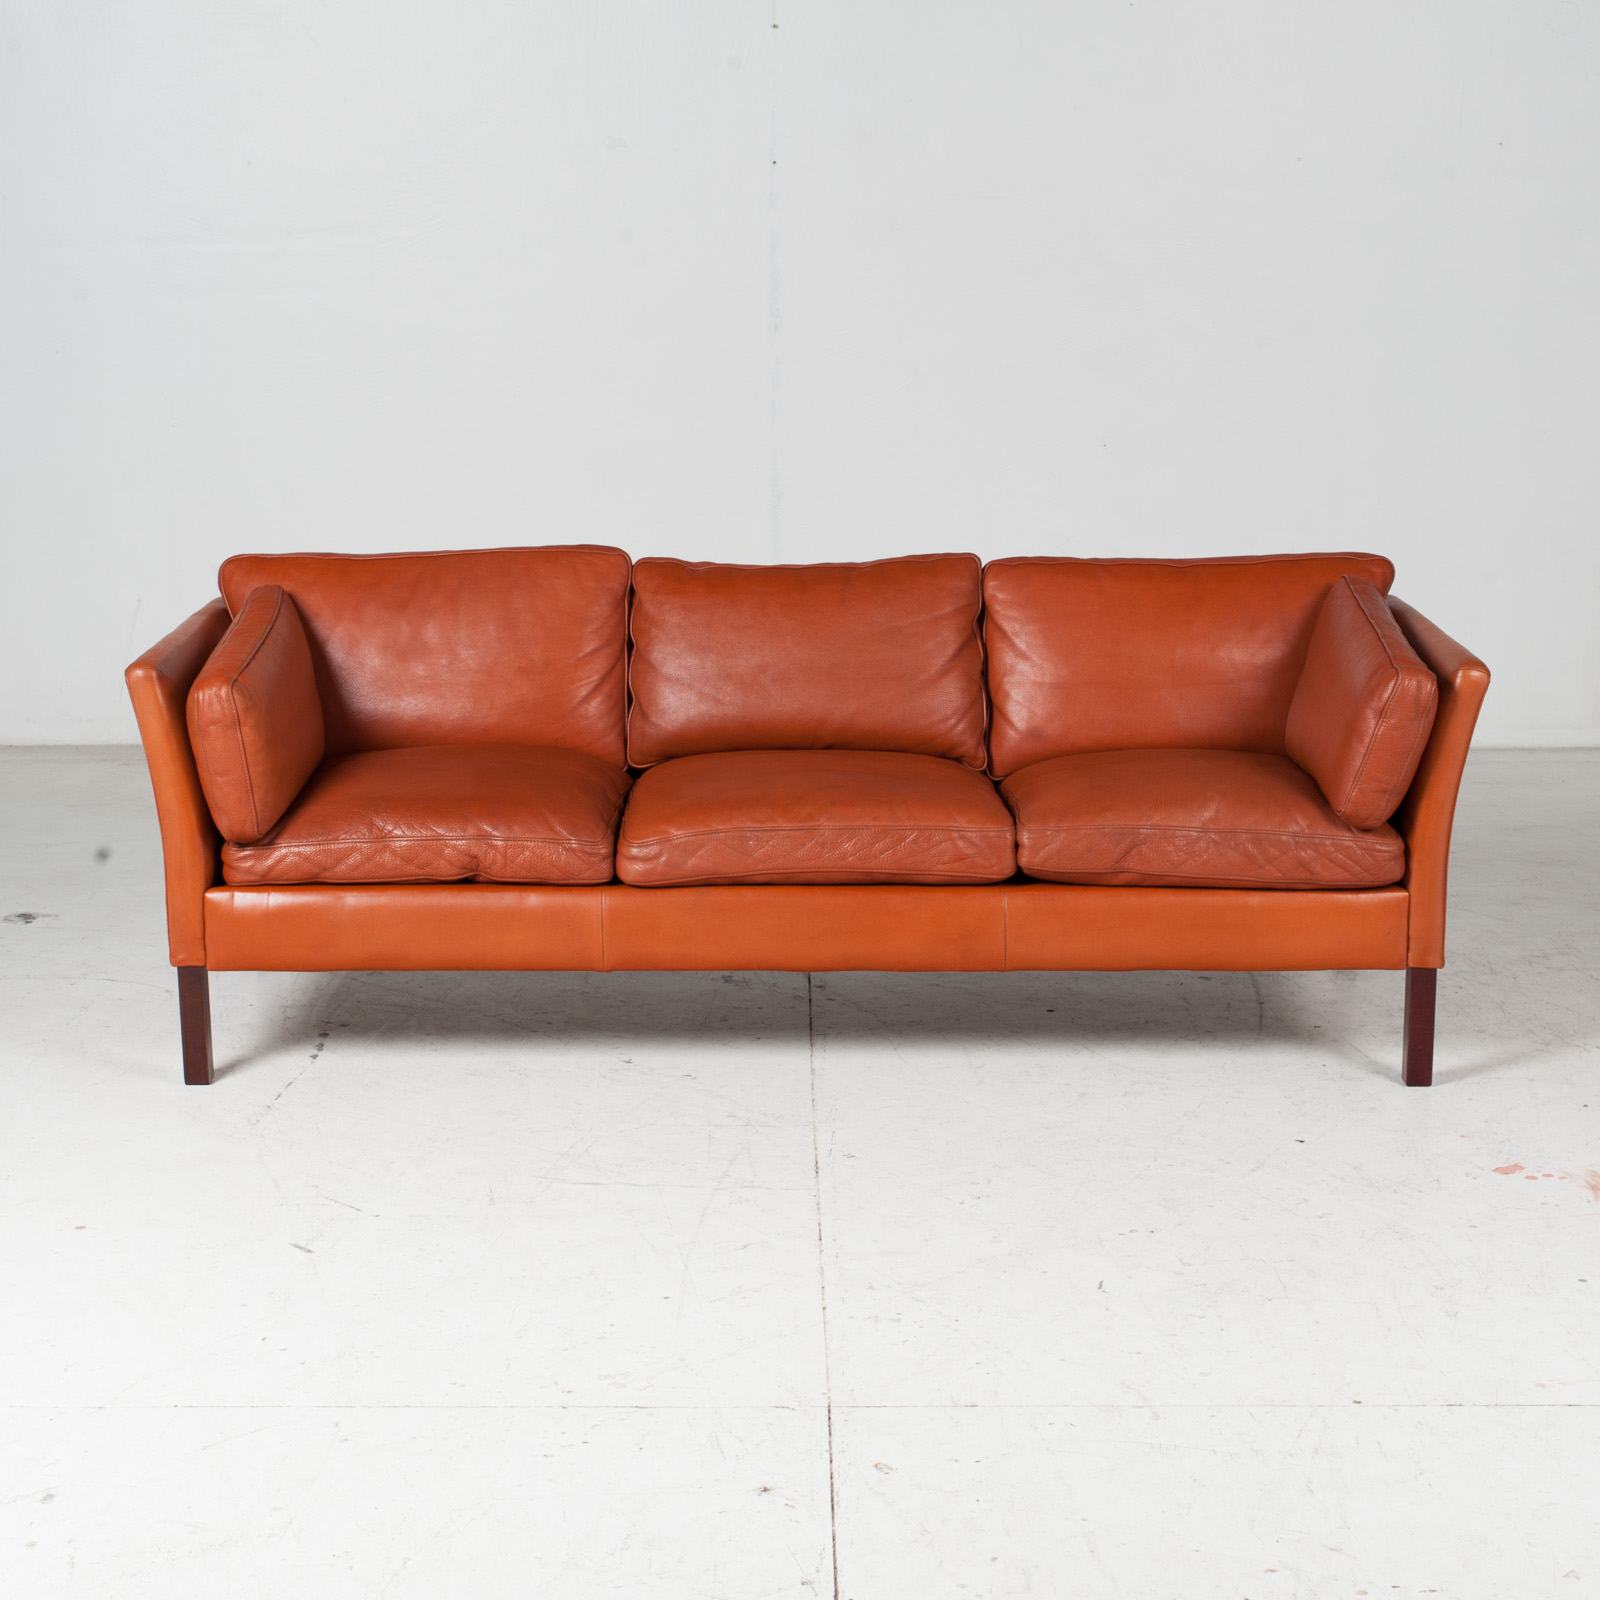 3 Seat Sofa By Stouby In Tan Leather, 1960s, Denmark 3